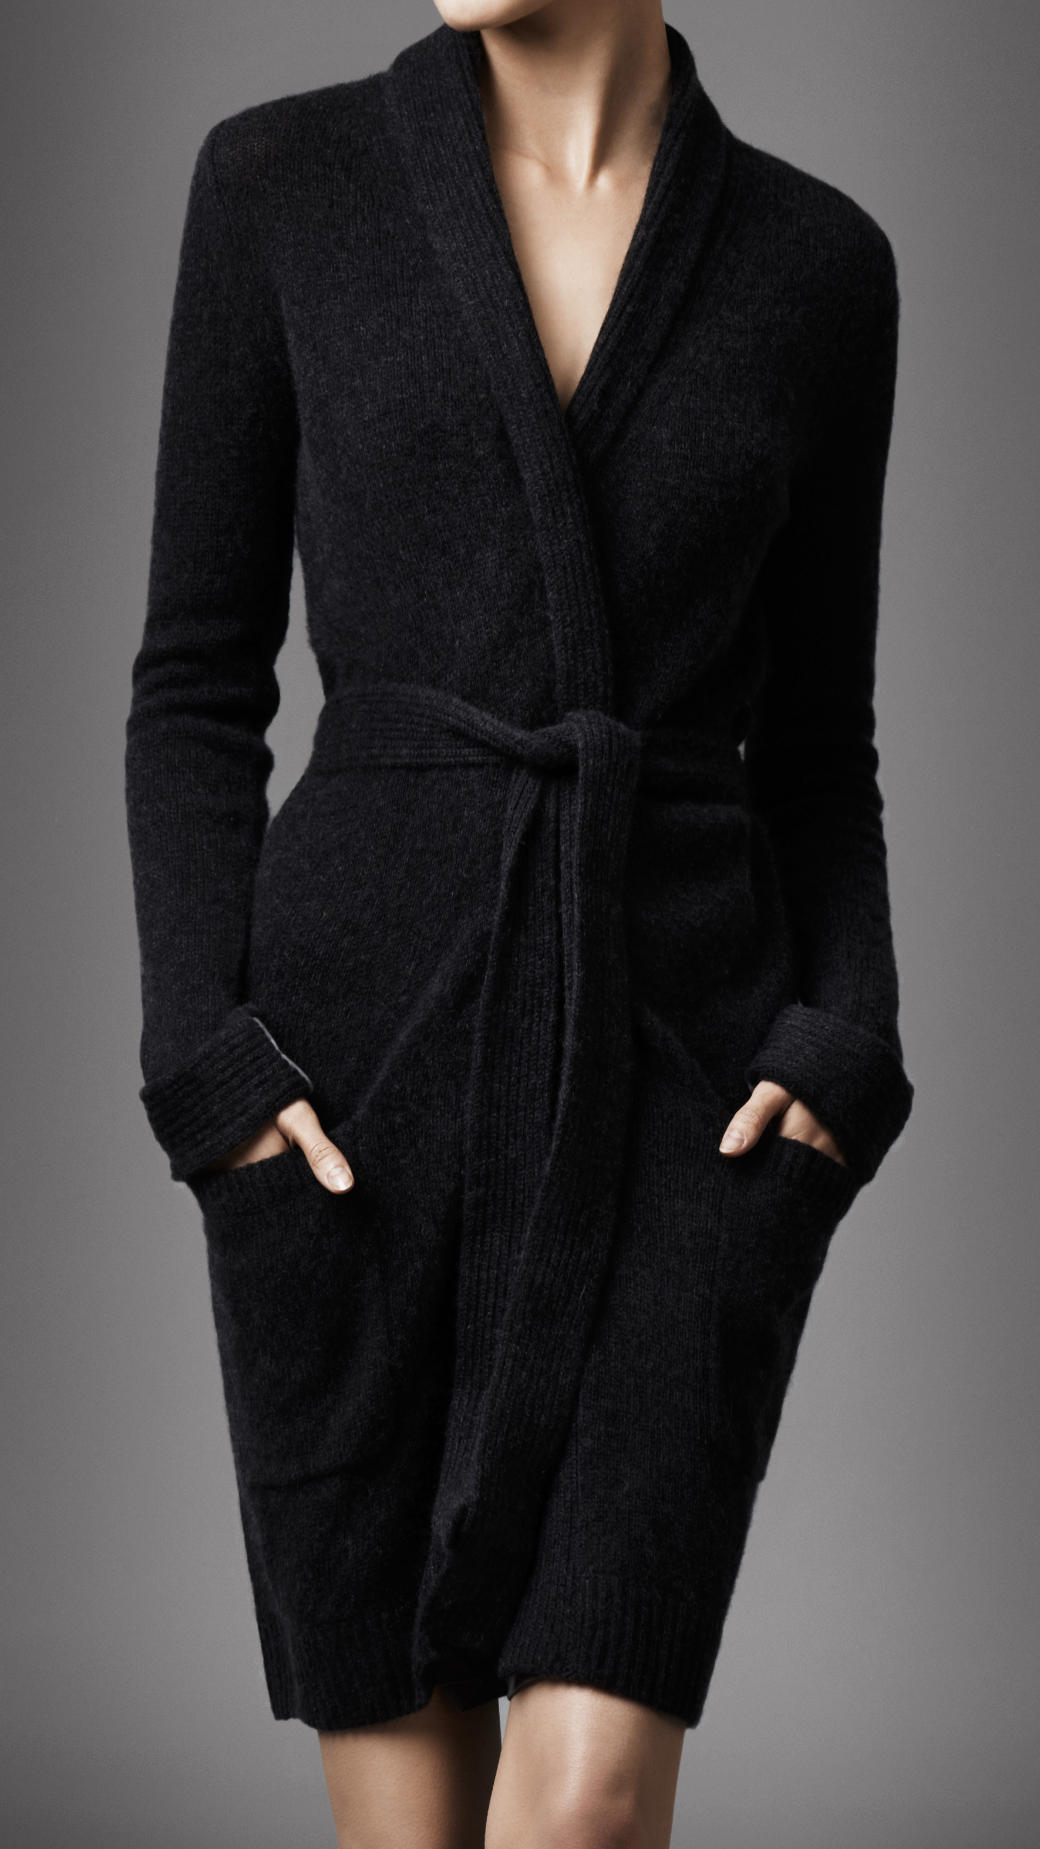 Lyst - Burberry Cashmere Dressing Gown in Black